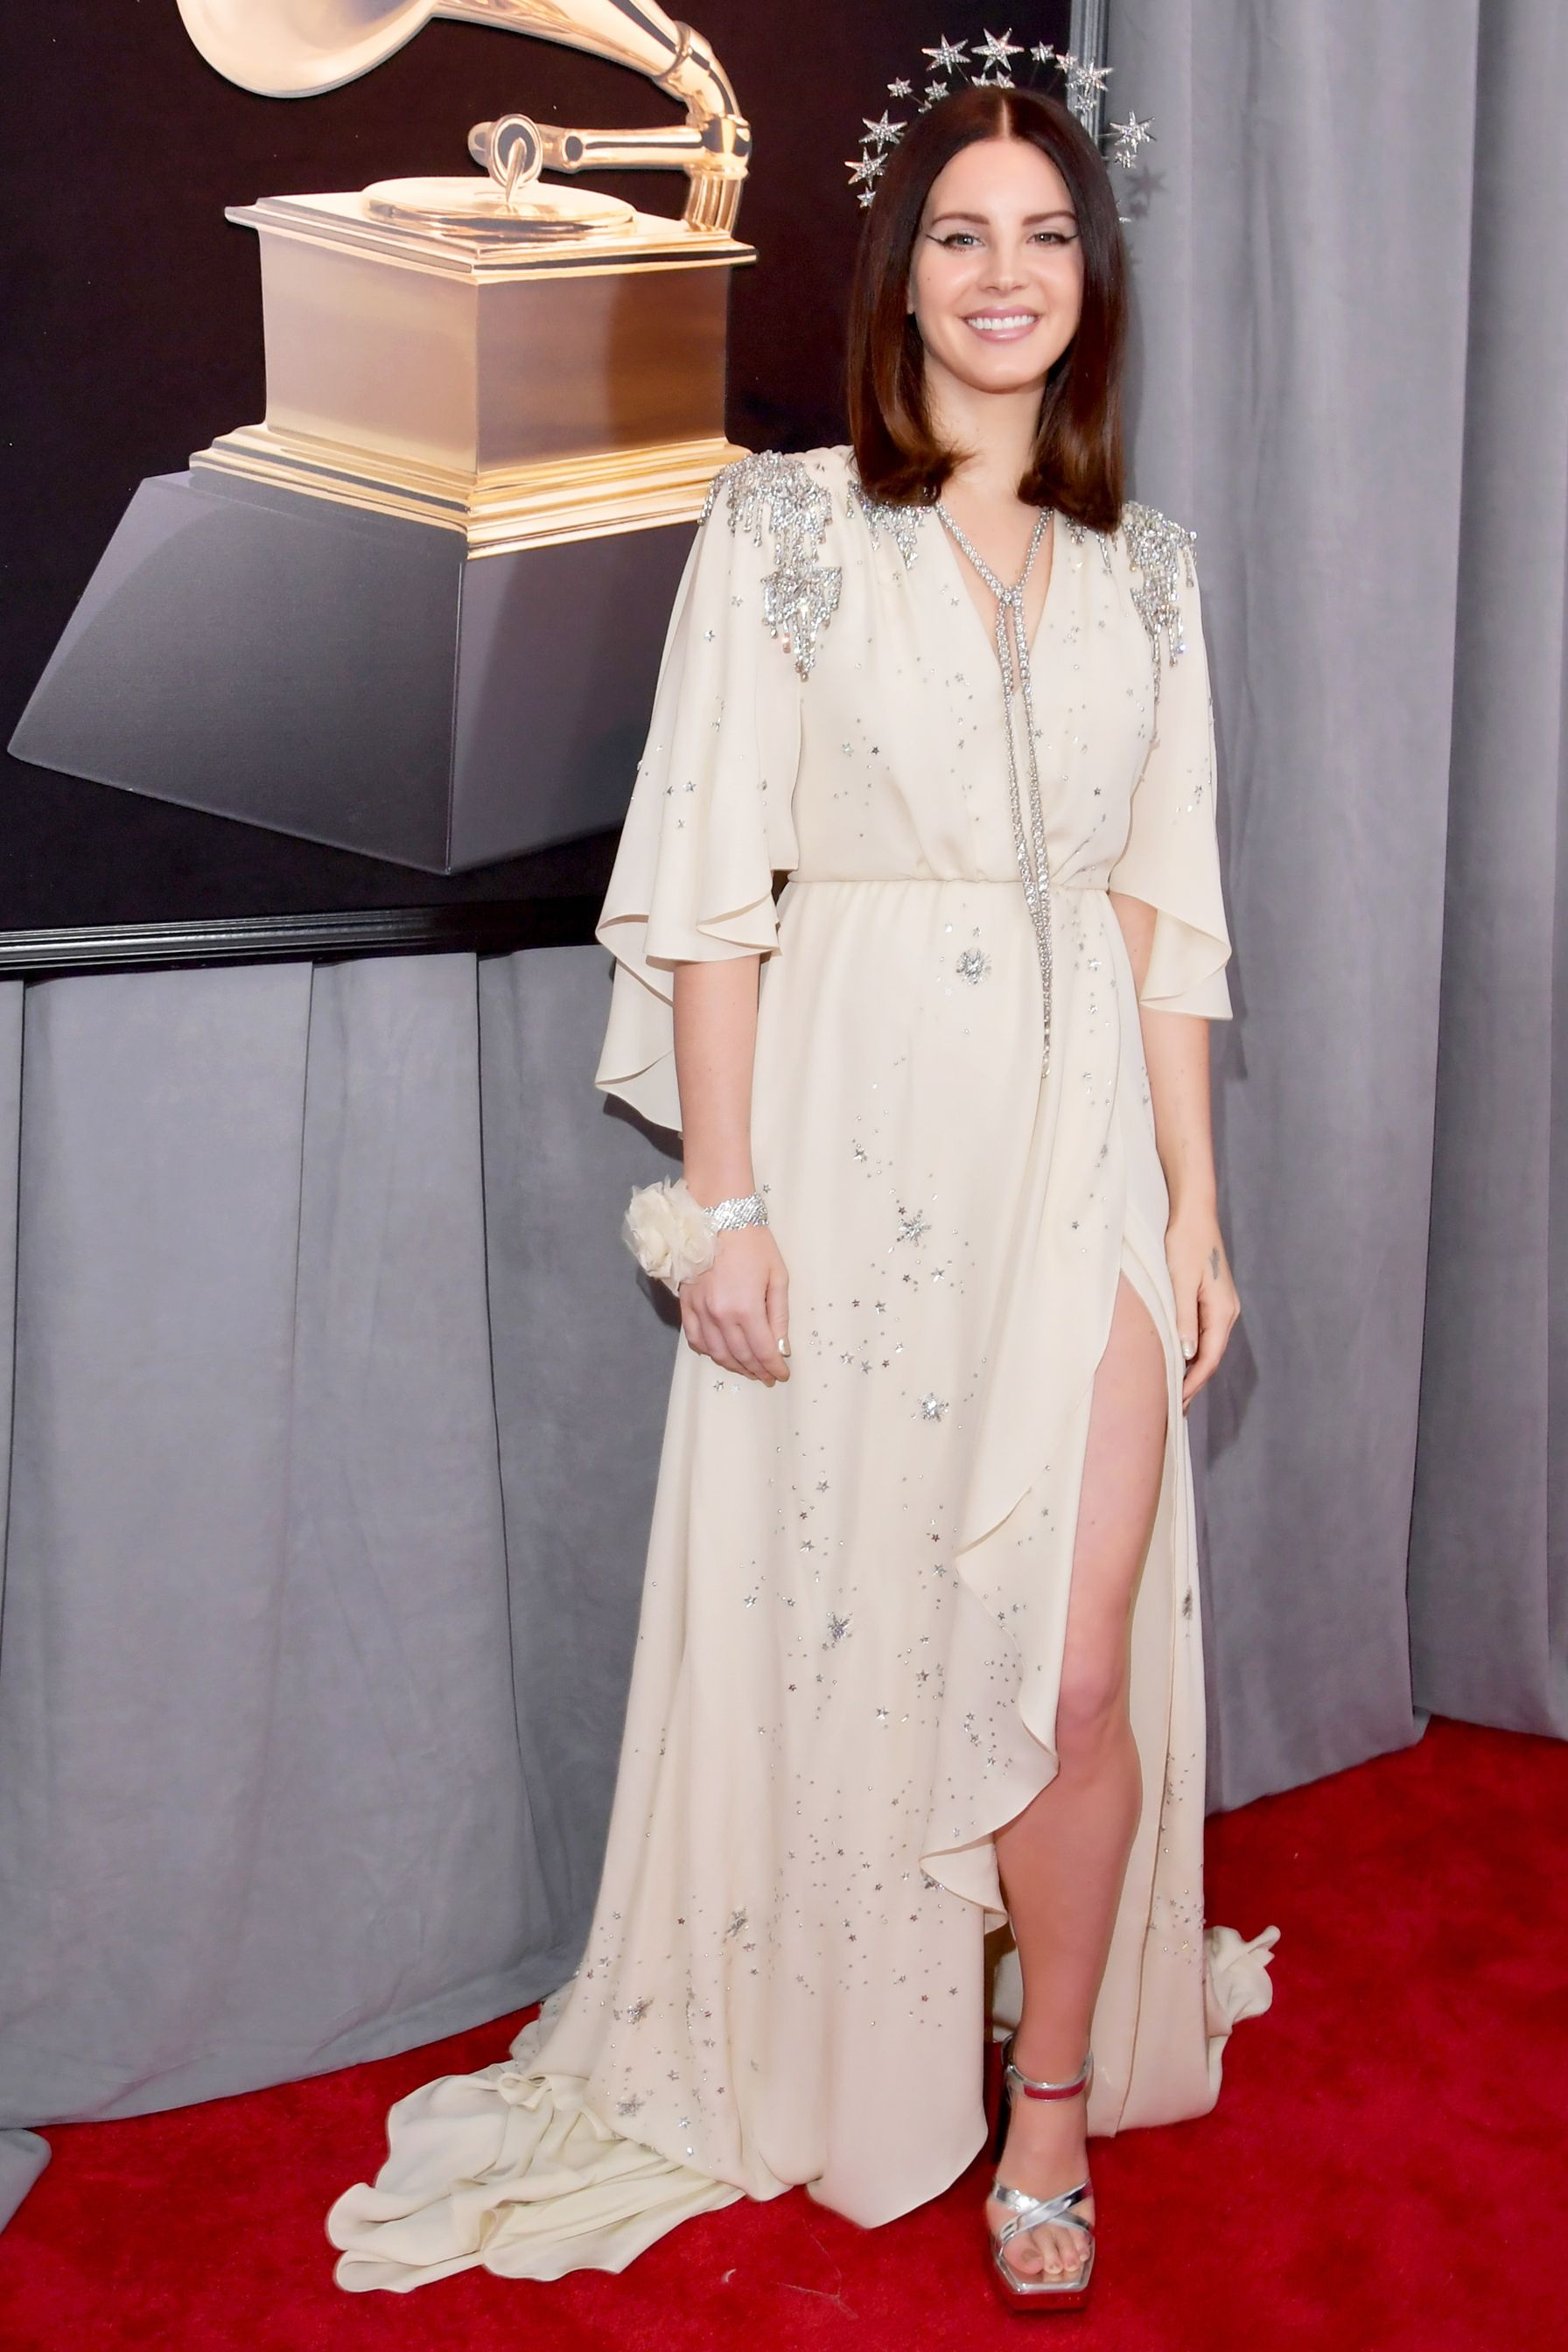 ae189ed6903 See All the 2018 Grammy Awards Red Carpet Arrivals - Lana Del Rey from  InStyle.com